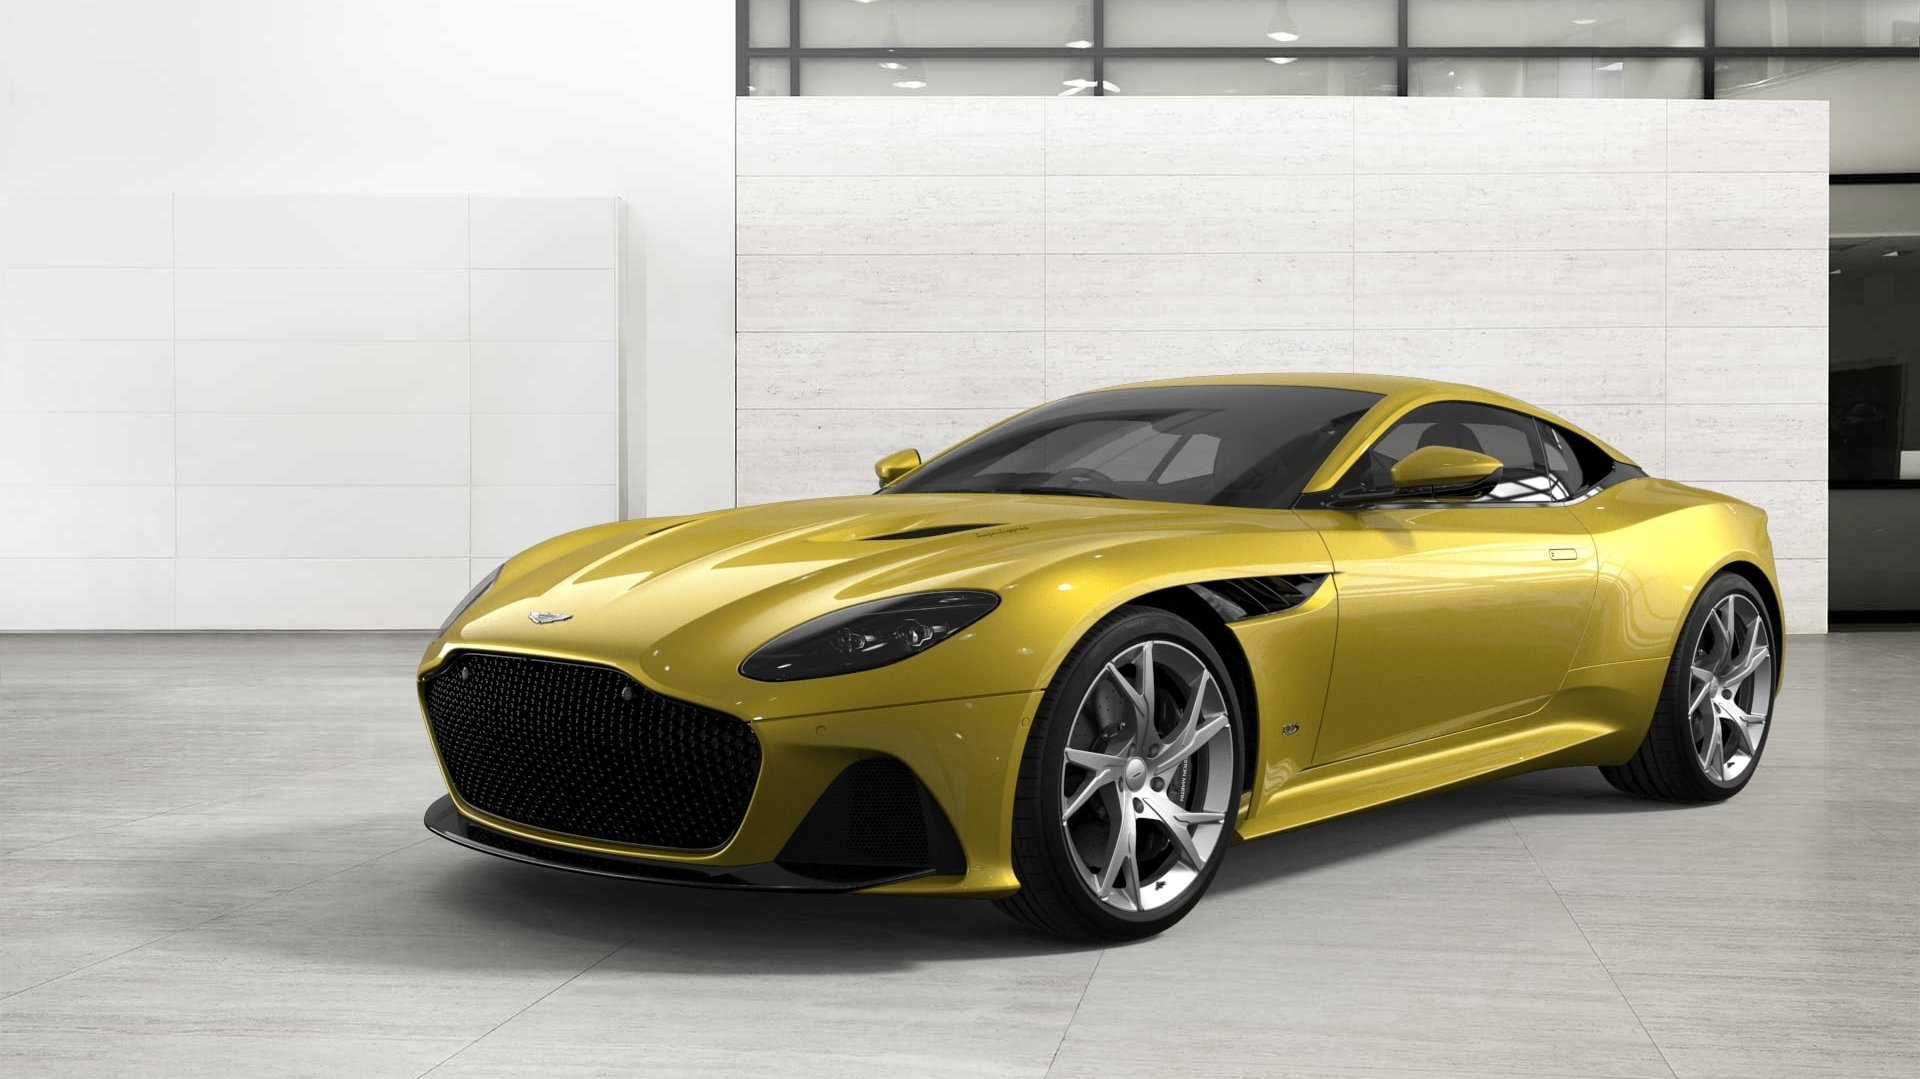 2019 aston martin dbs superleggera how we d spec it top speed howldb. Black Bedroom Furniture Sets. Home Design Ideas